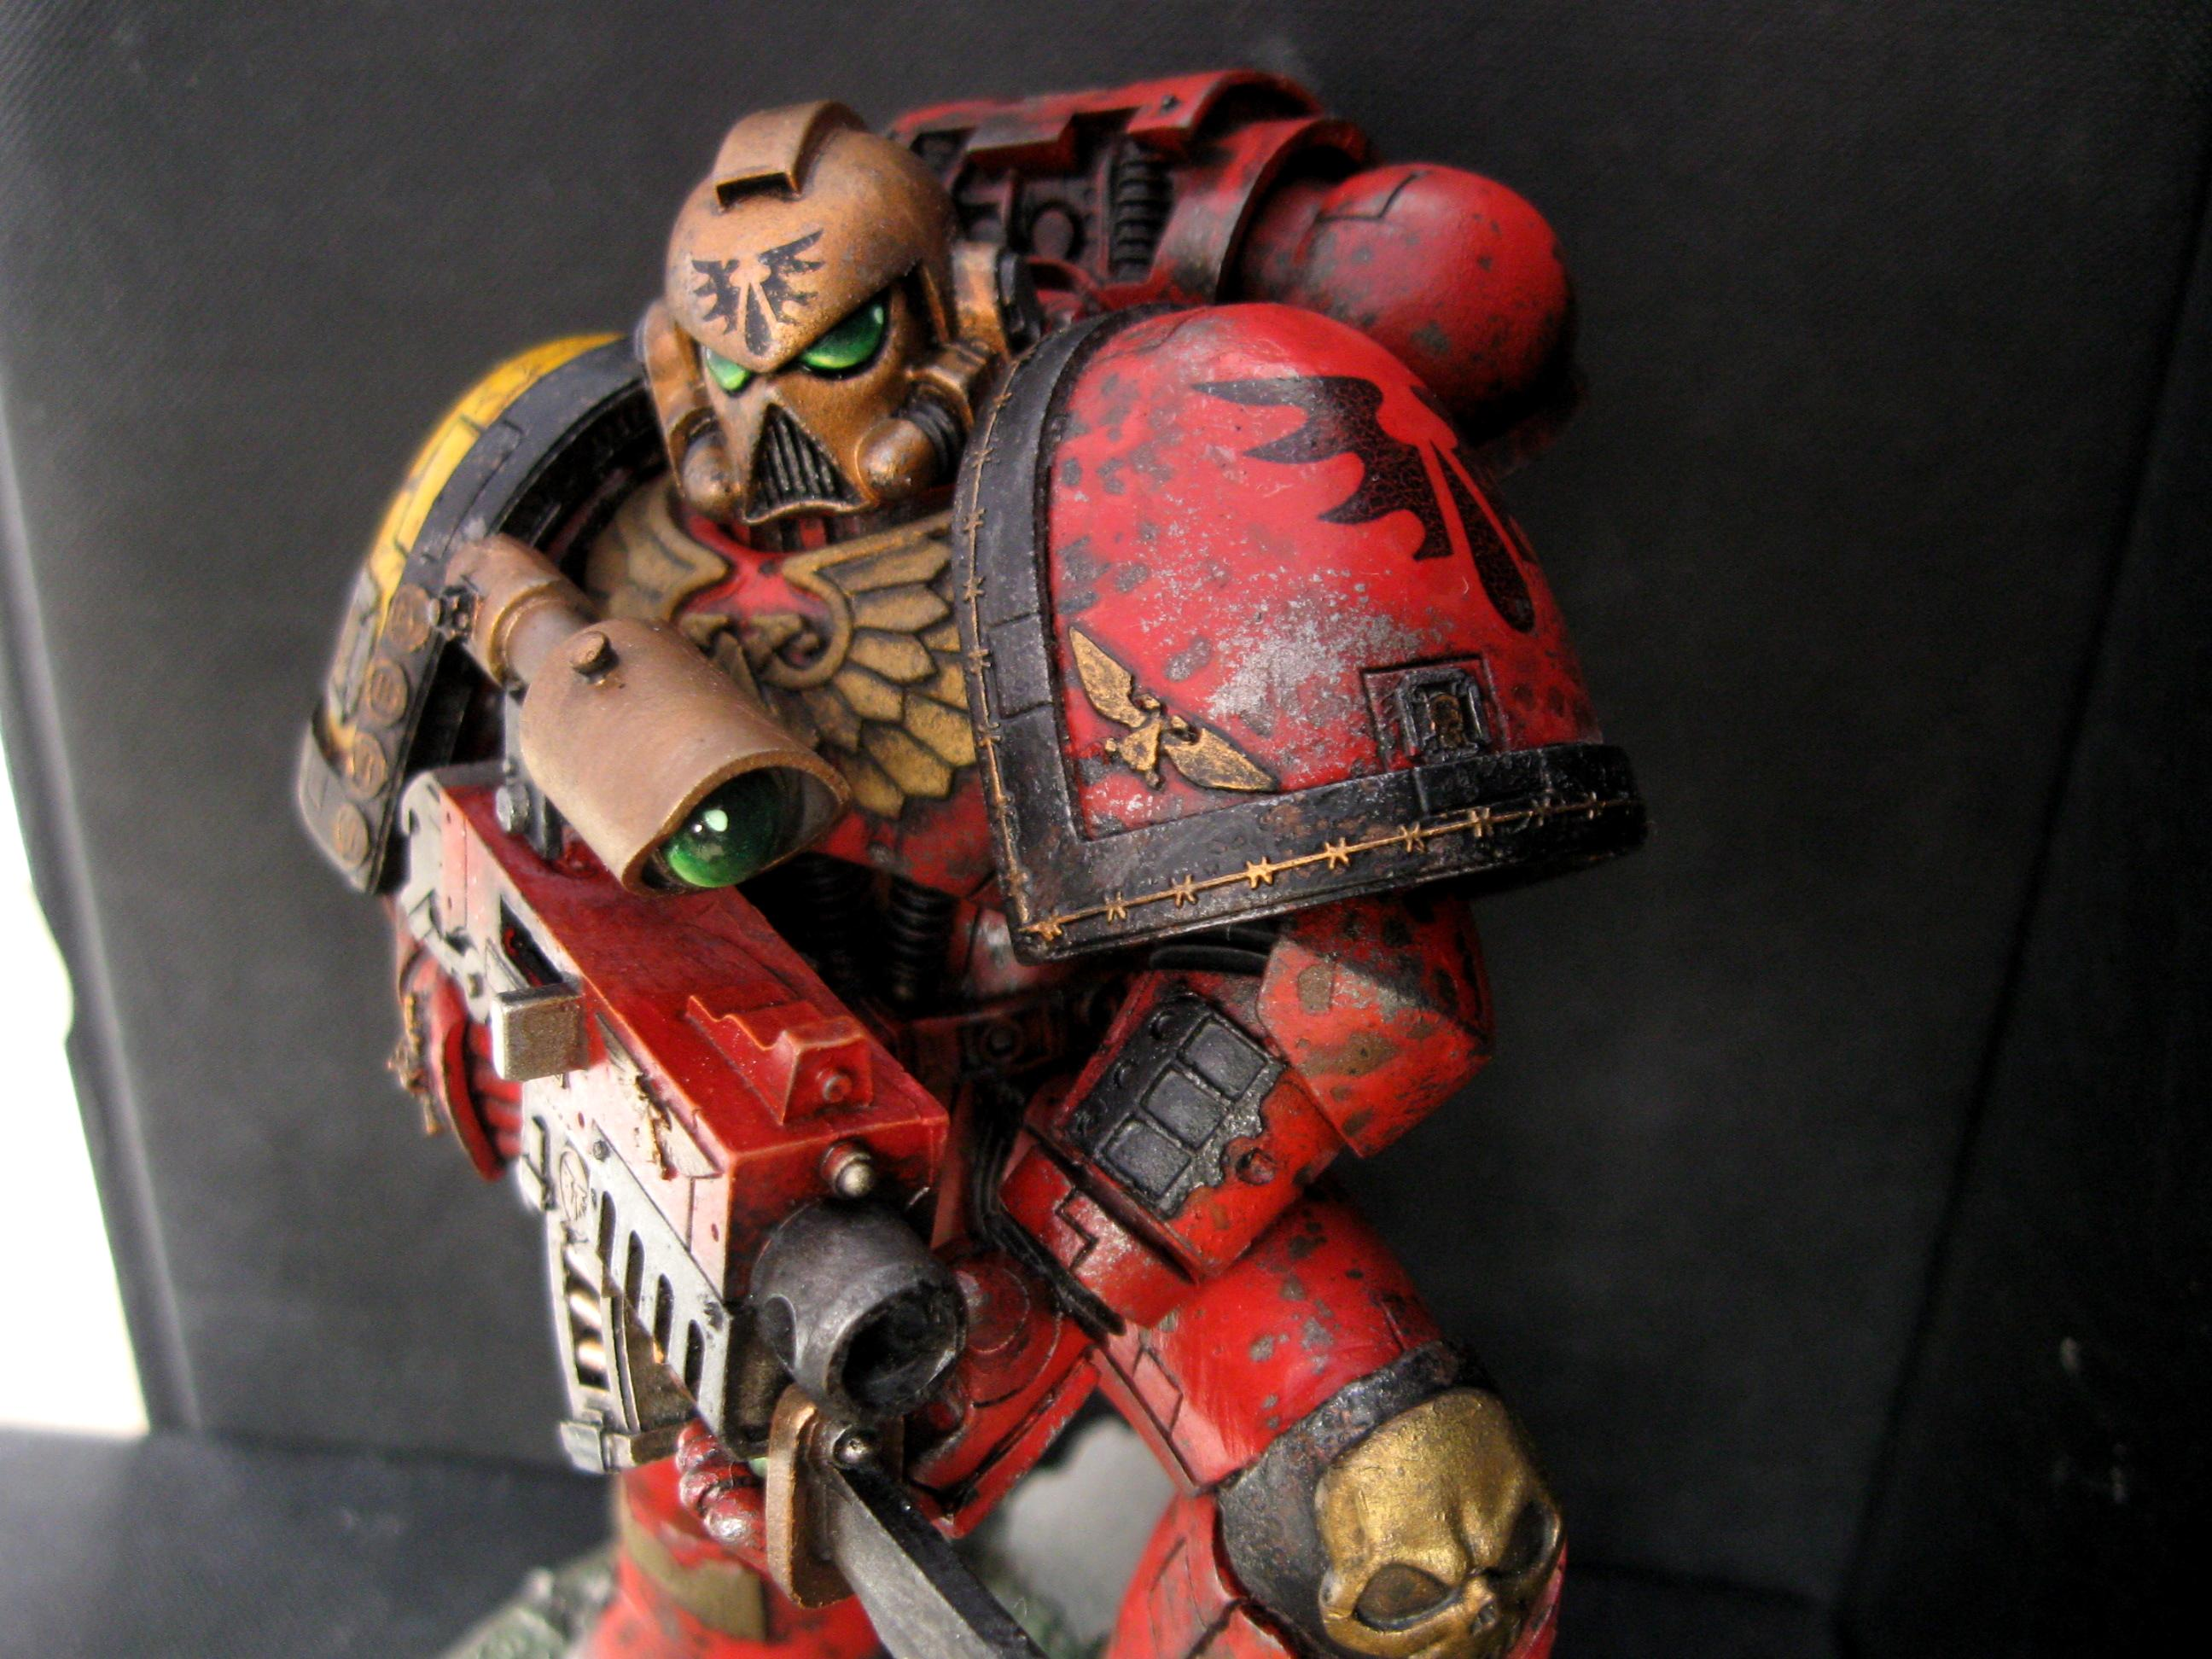 Blood Angels, Forge World, Large, Space Marines